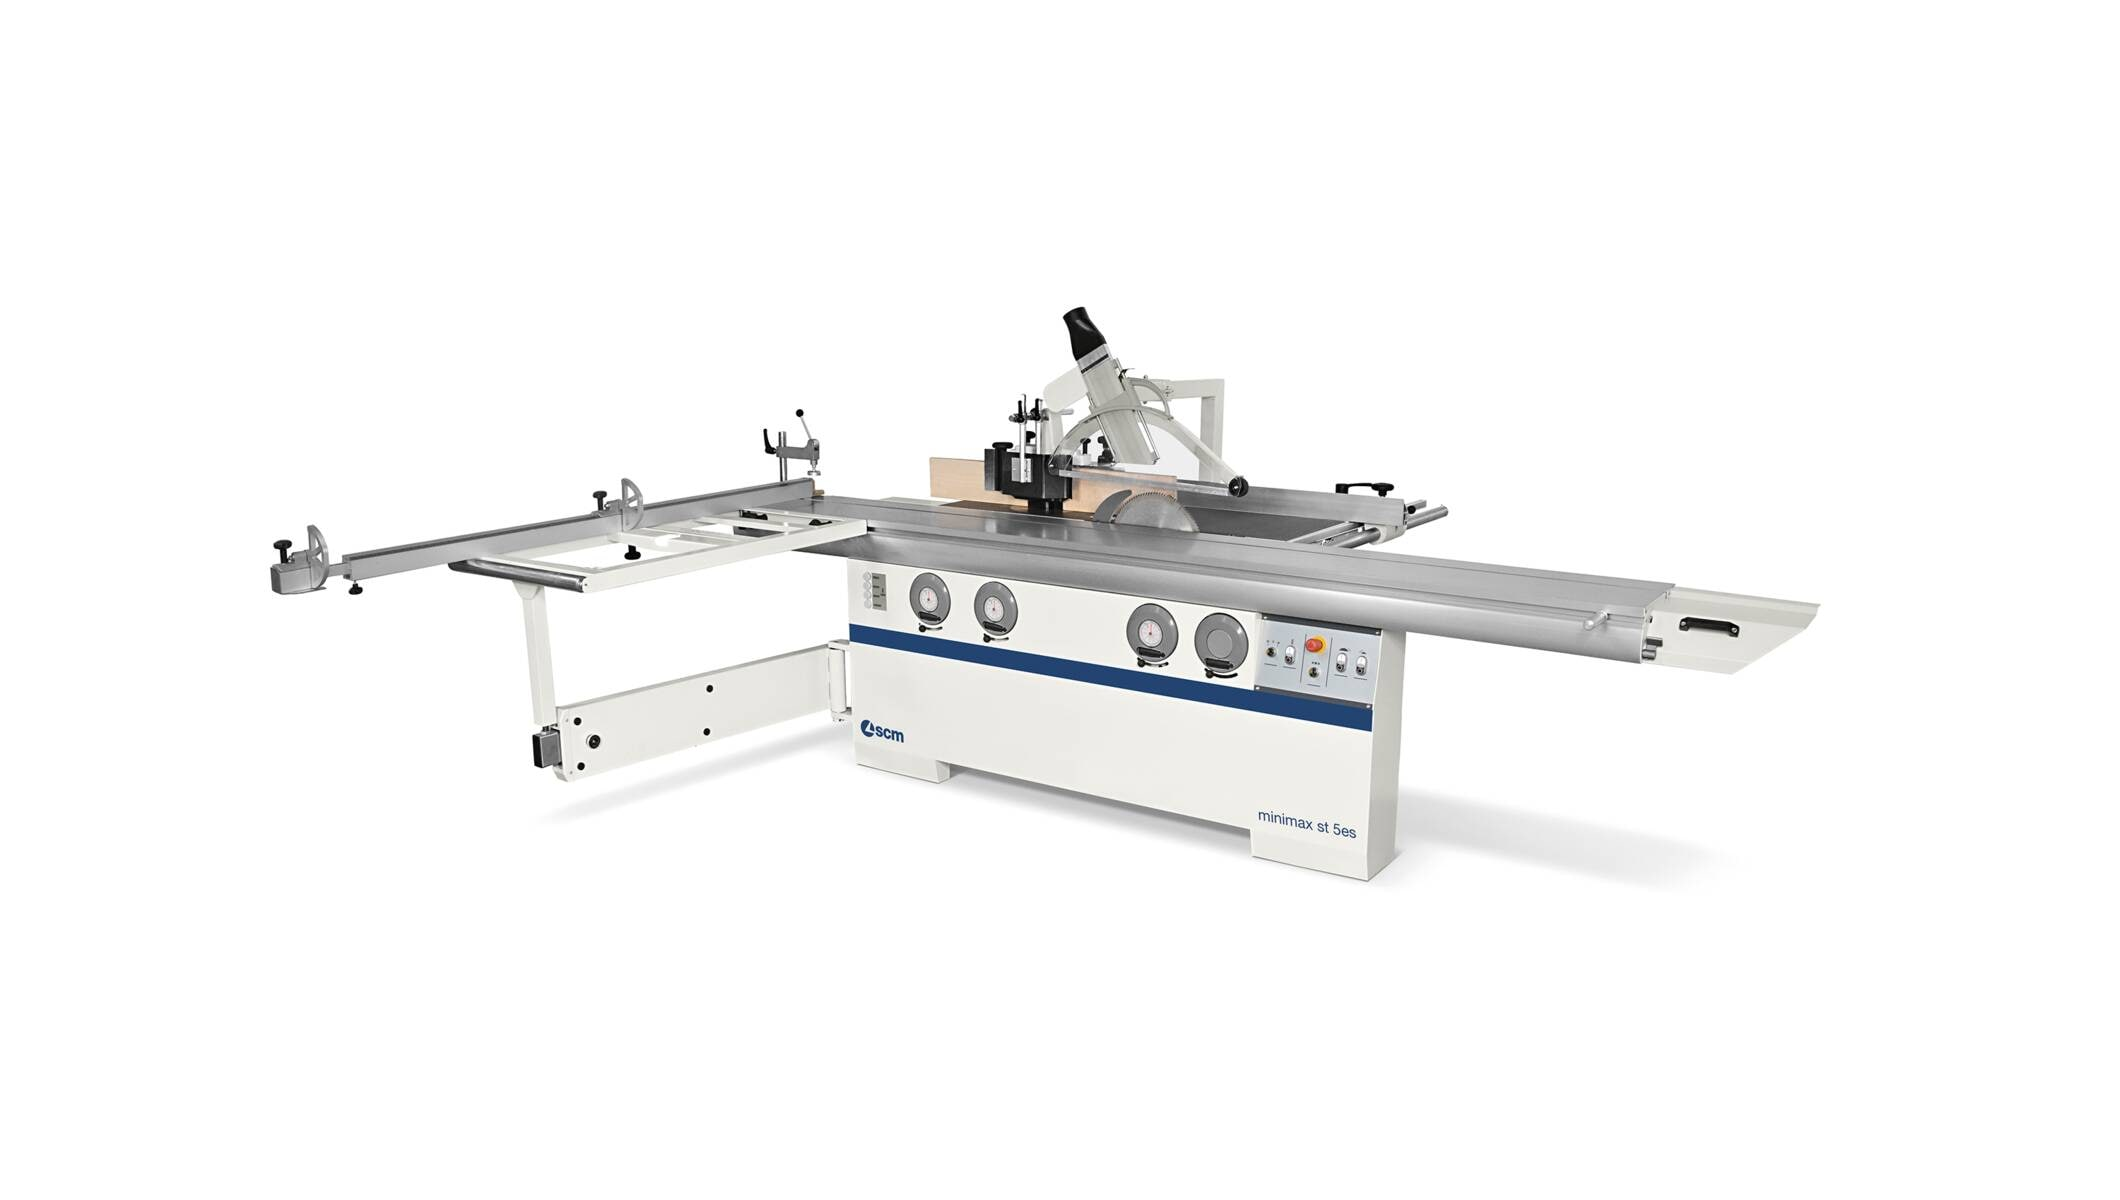 Joinery machines - Saw / shaper combination machines - minimax st 5es